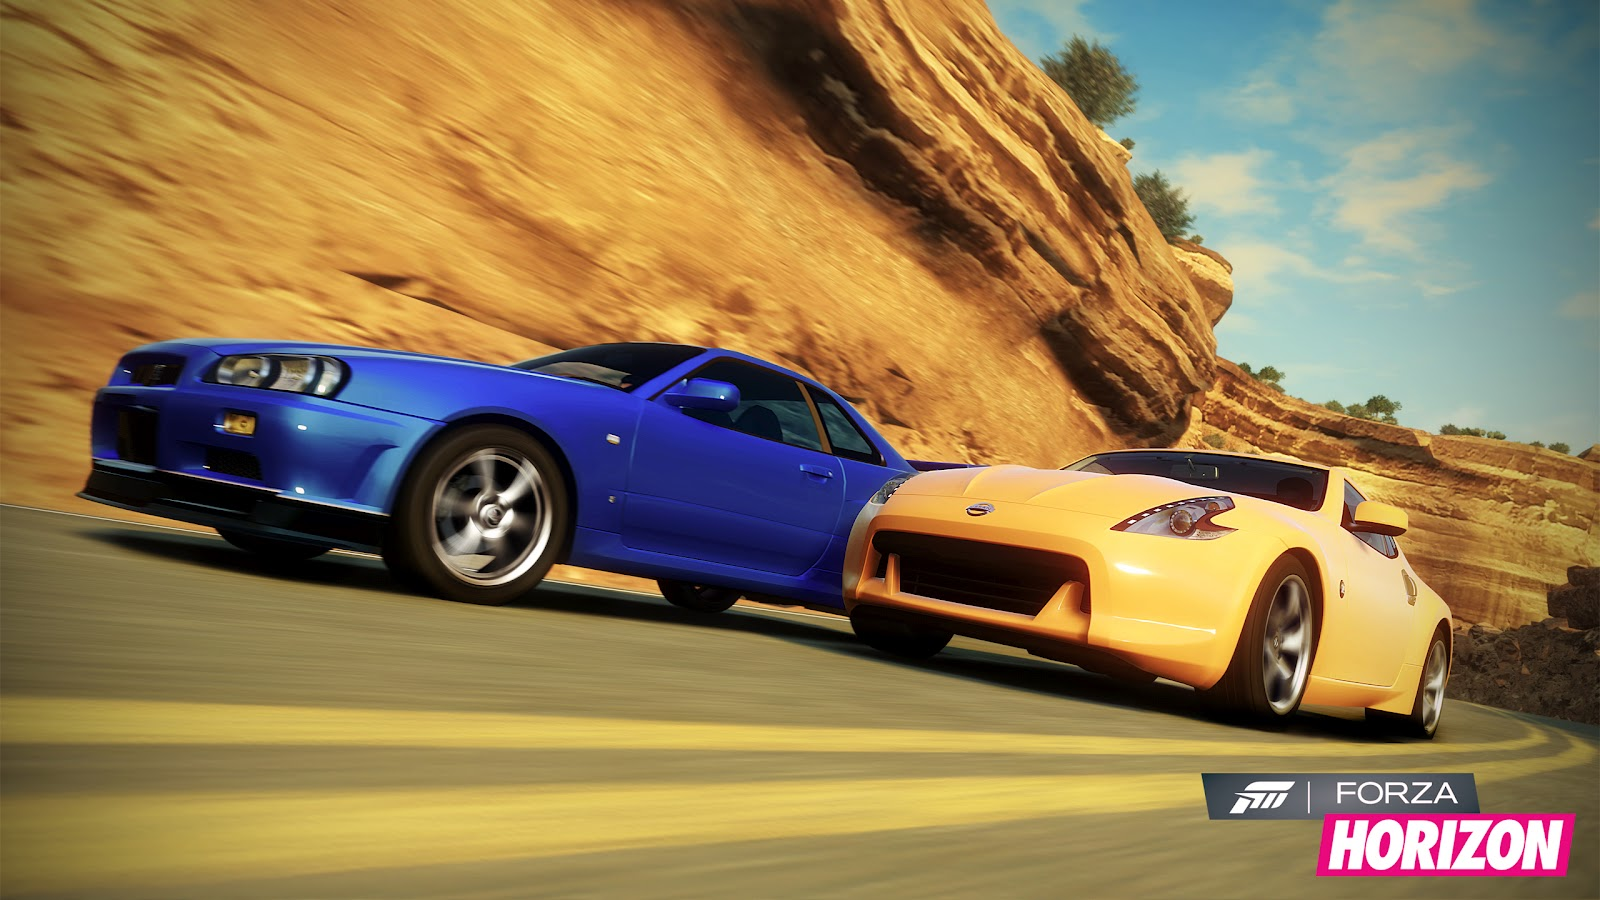 Forza Horizon HD & Widescreen Wallpaper 0.421155386043239